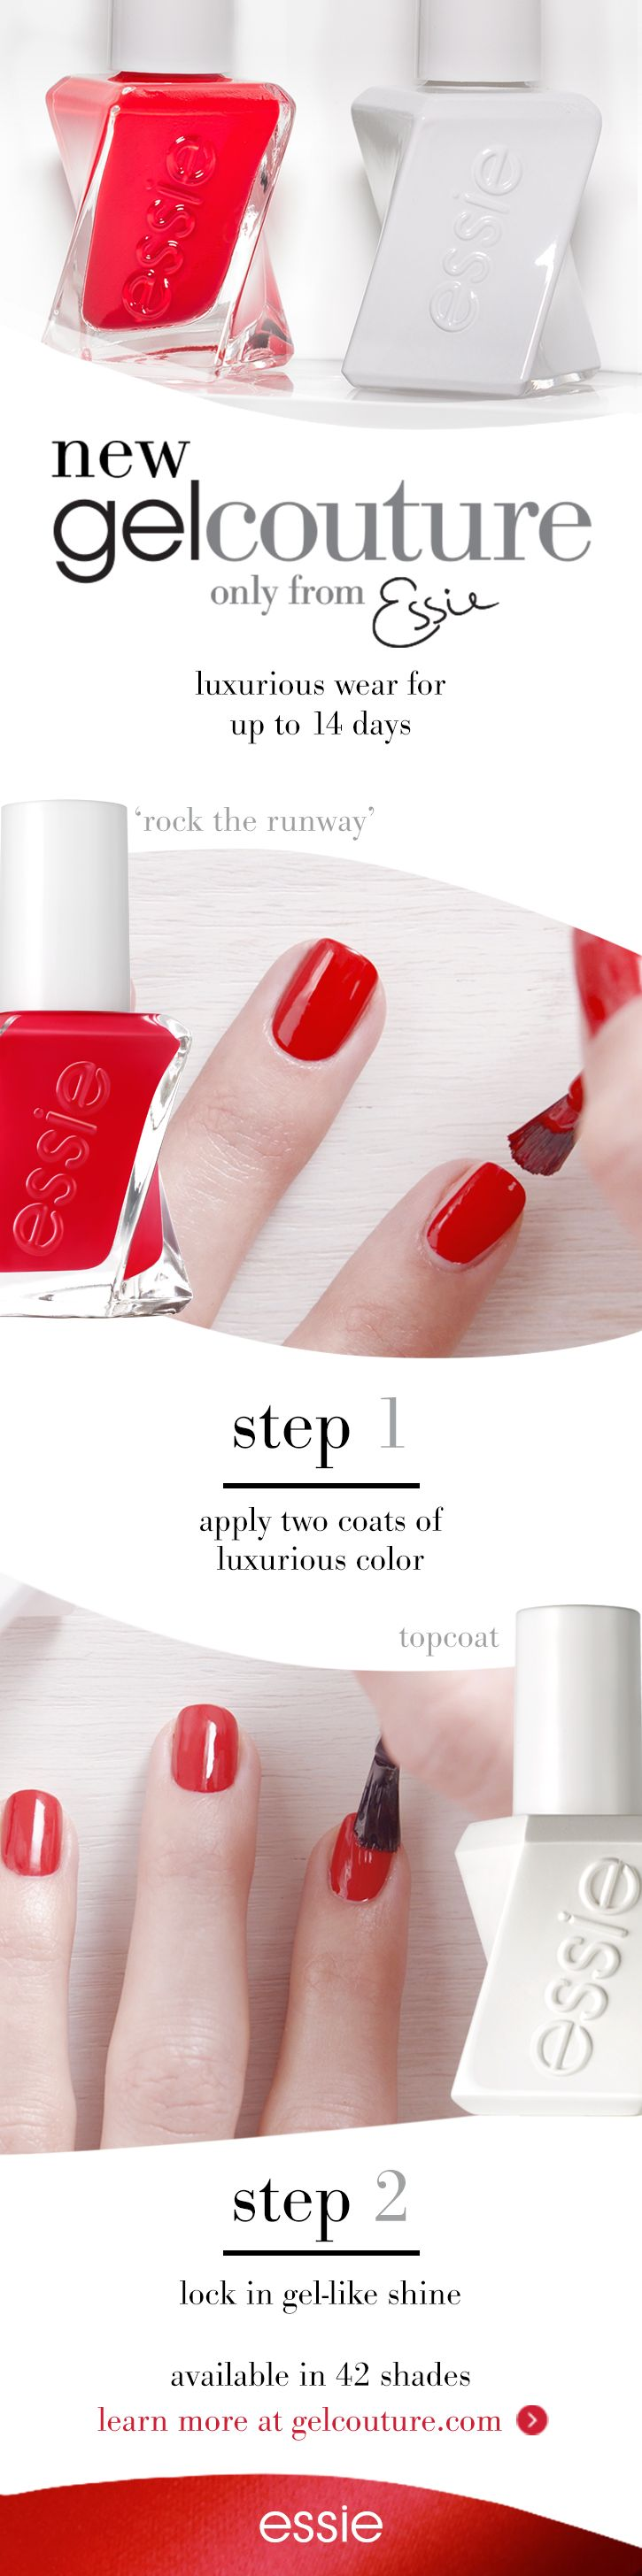 Experience the luxury of couture with the new gel couture only from essie. Slip into salon perfection for up to 14 days of luxurious wear andf instant gel-like shine in an easy 2-step system.  Learn How To Apply: Start by cleansing the nail with polish remover. No base coat needed. Step 1: Apply 2 coats of luxurious gel couture nail polish color in. Allow 60 seconds to dry between coats. Step 2: Seal with gel couture top coat for flawless gel-like shine. No UV or LED lamps needed. Easy…